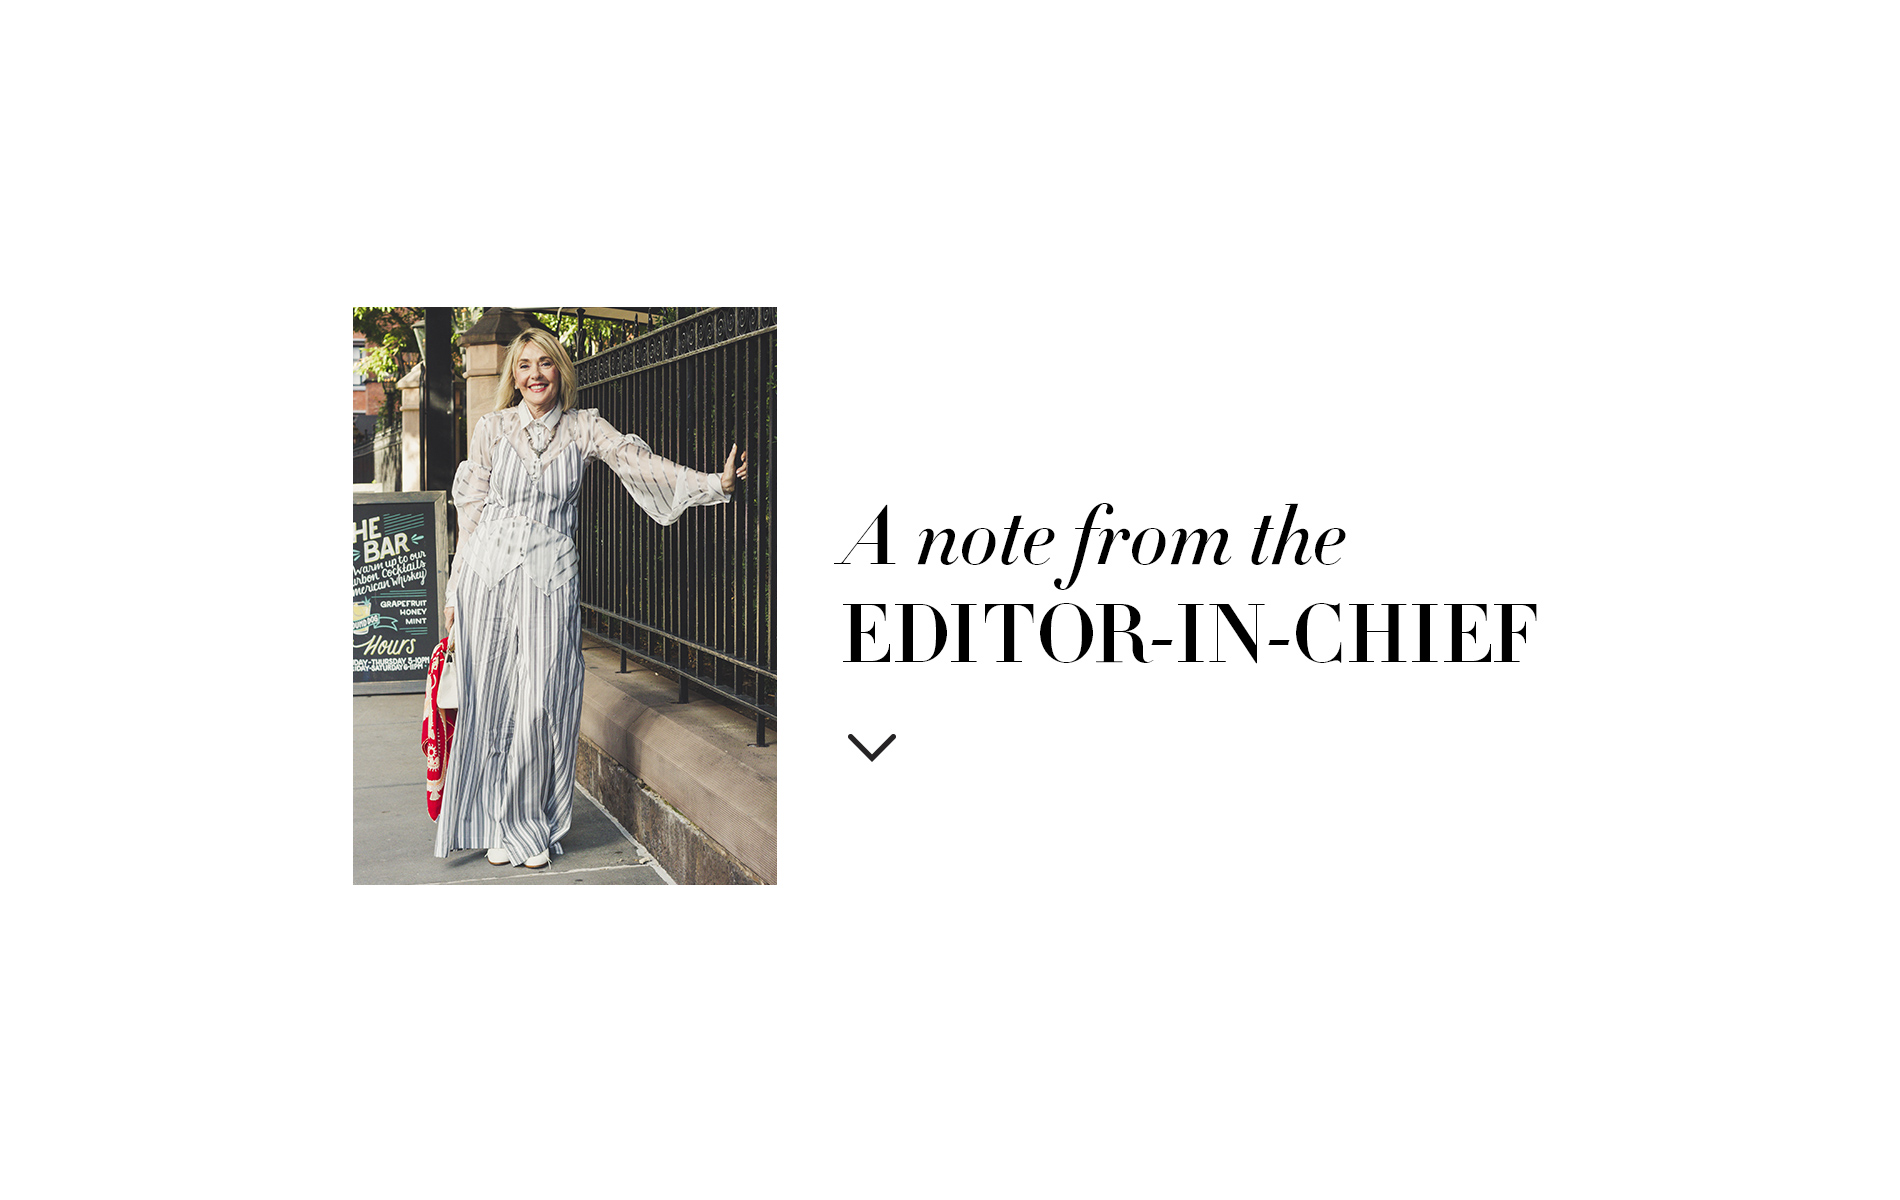 Editor in Chief Note by Lisa Burwell, November 2017 The Art & Culture issue.